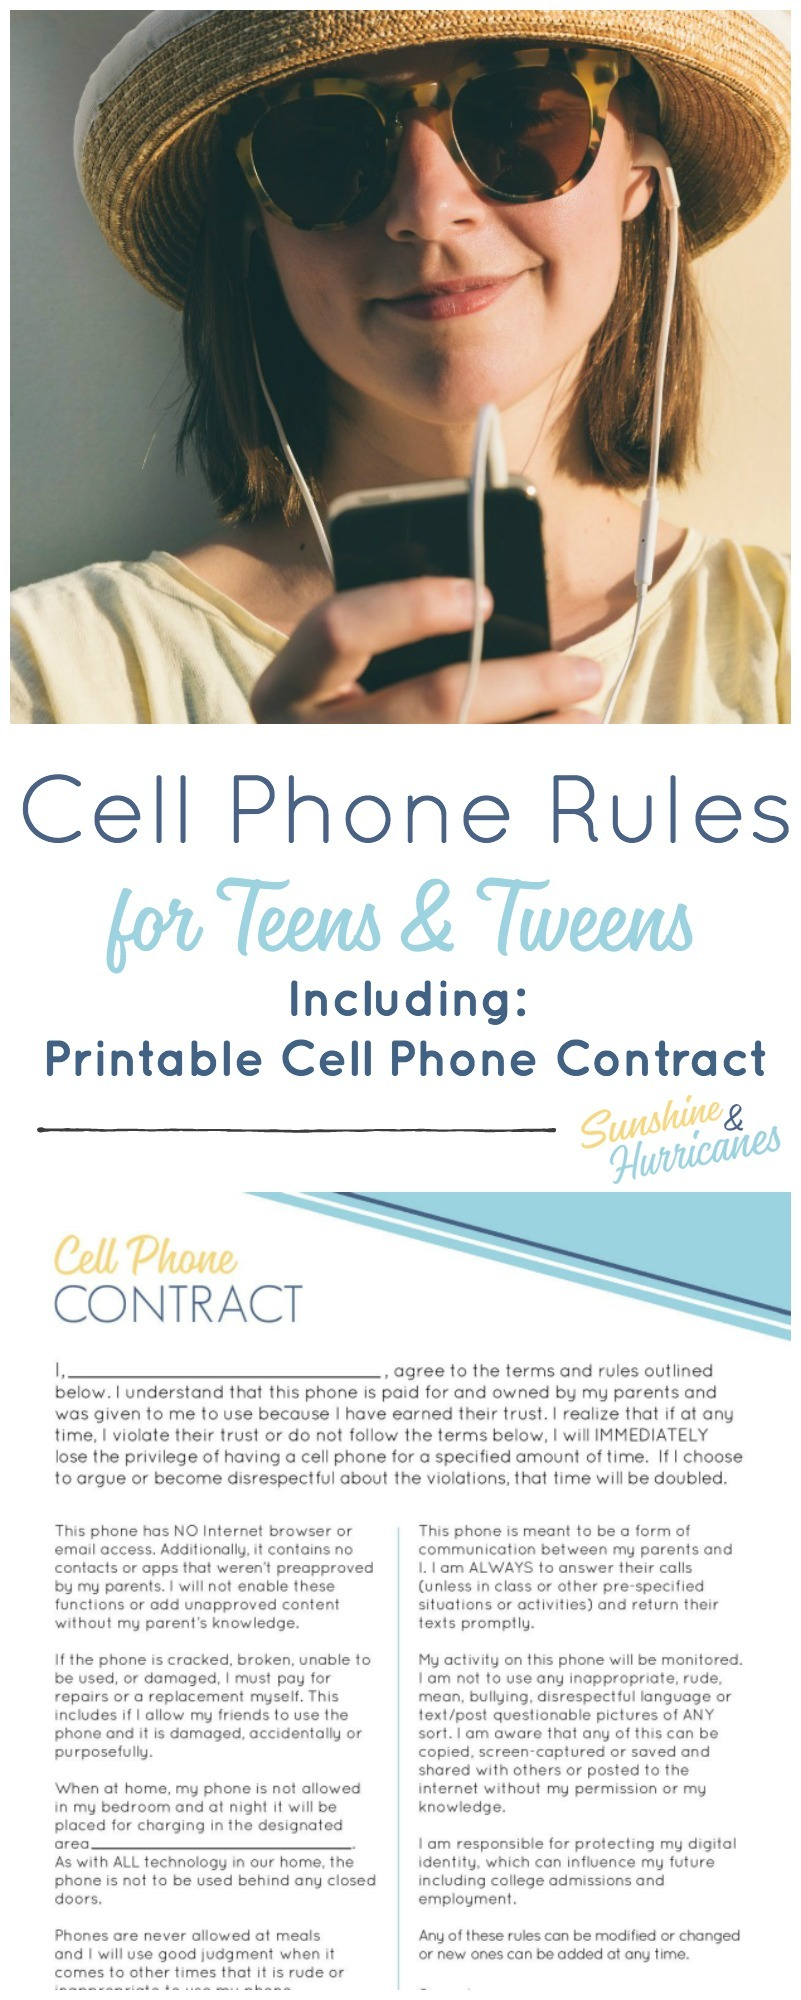 It's just an image of Crush Printable Cell Phone Contract for Tweens